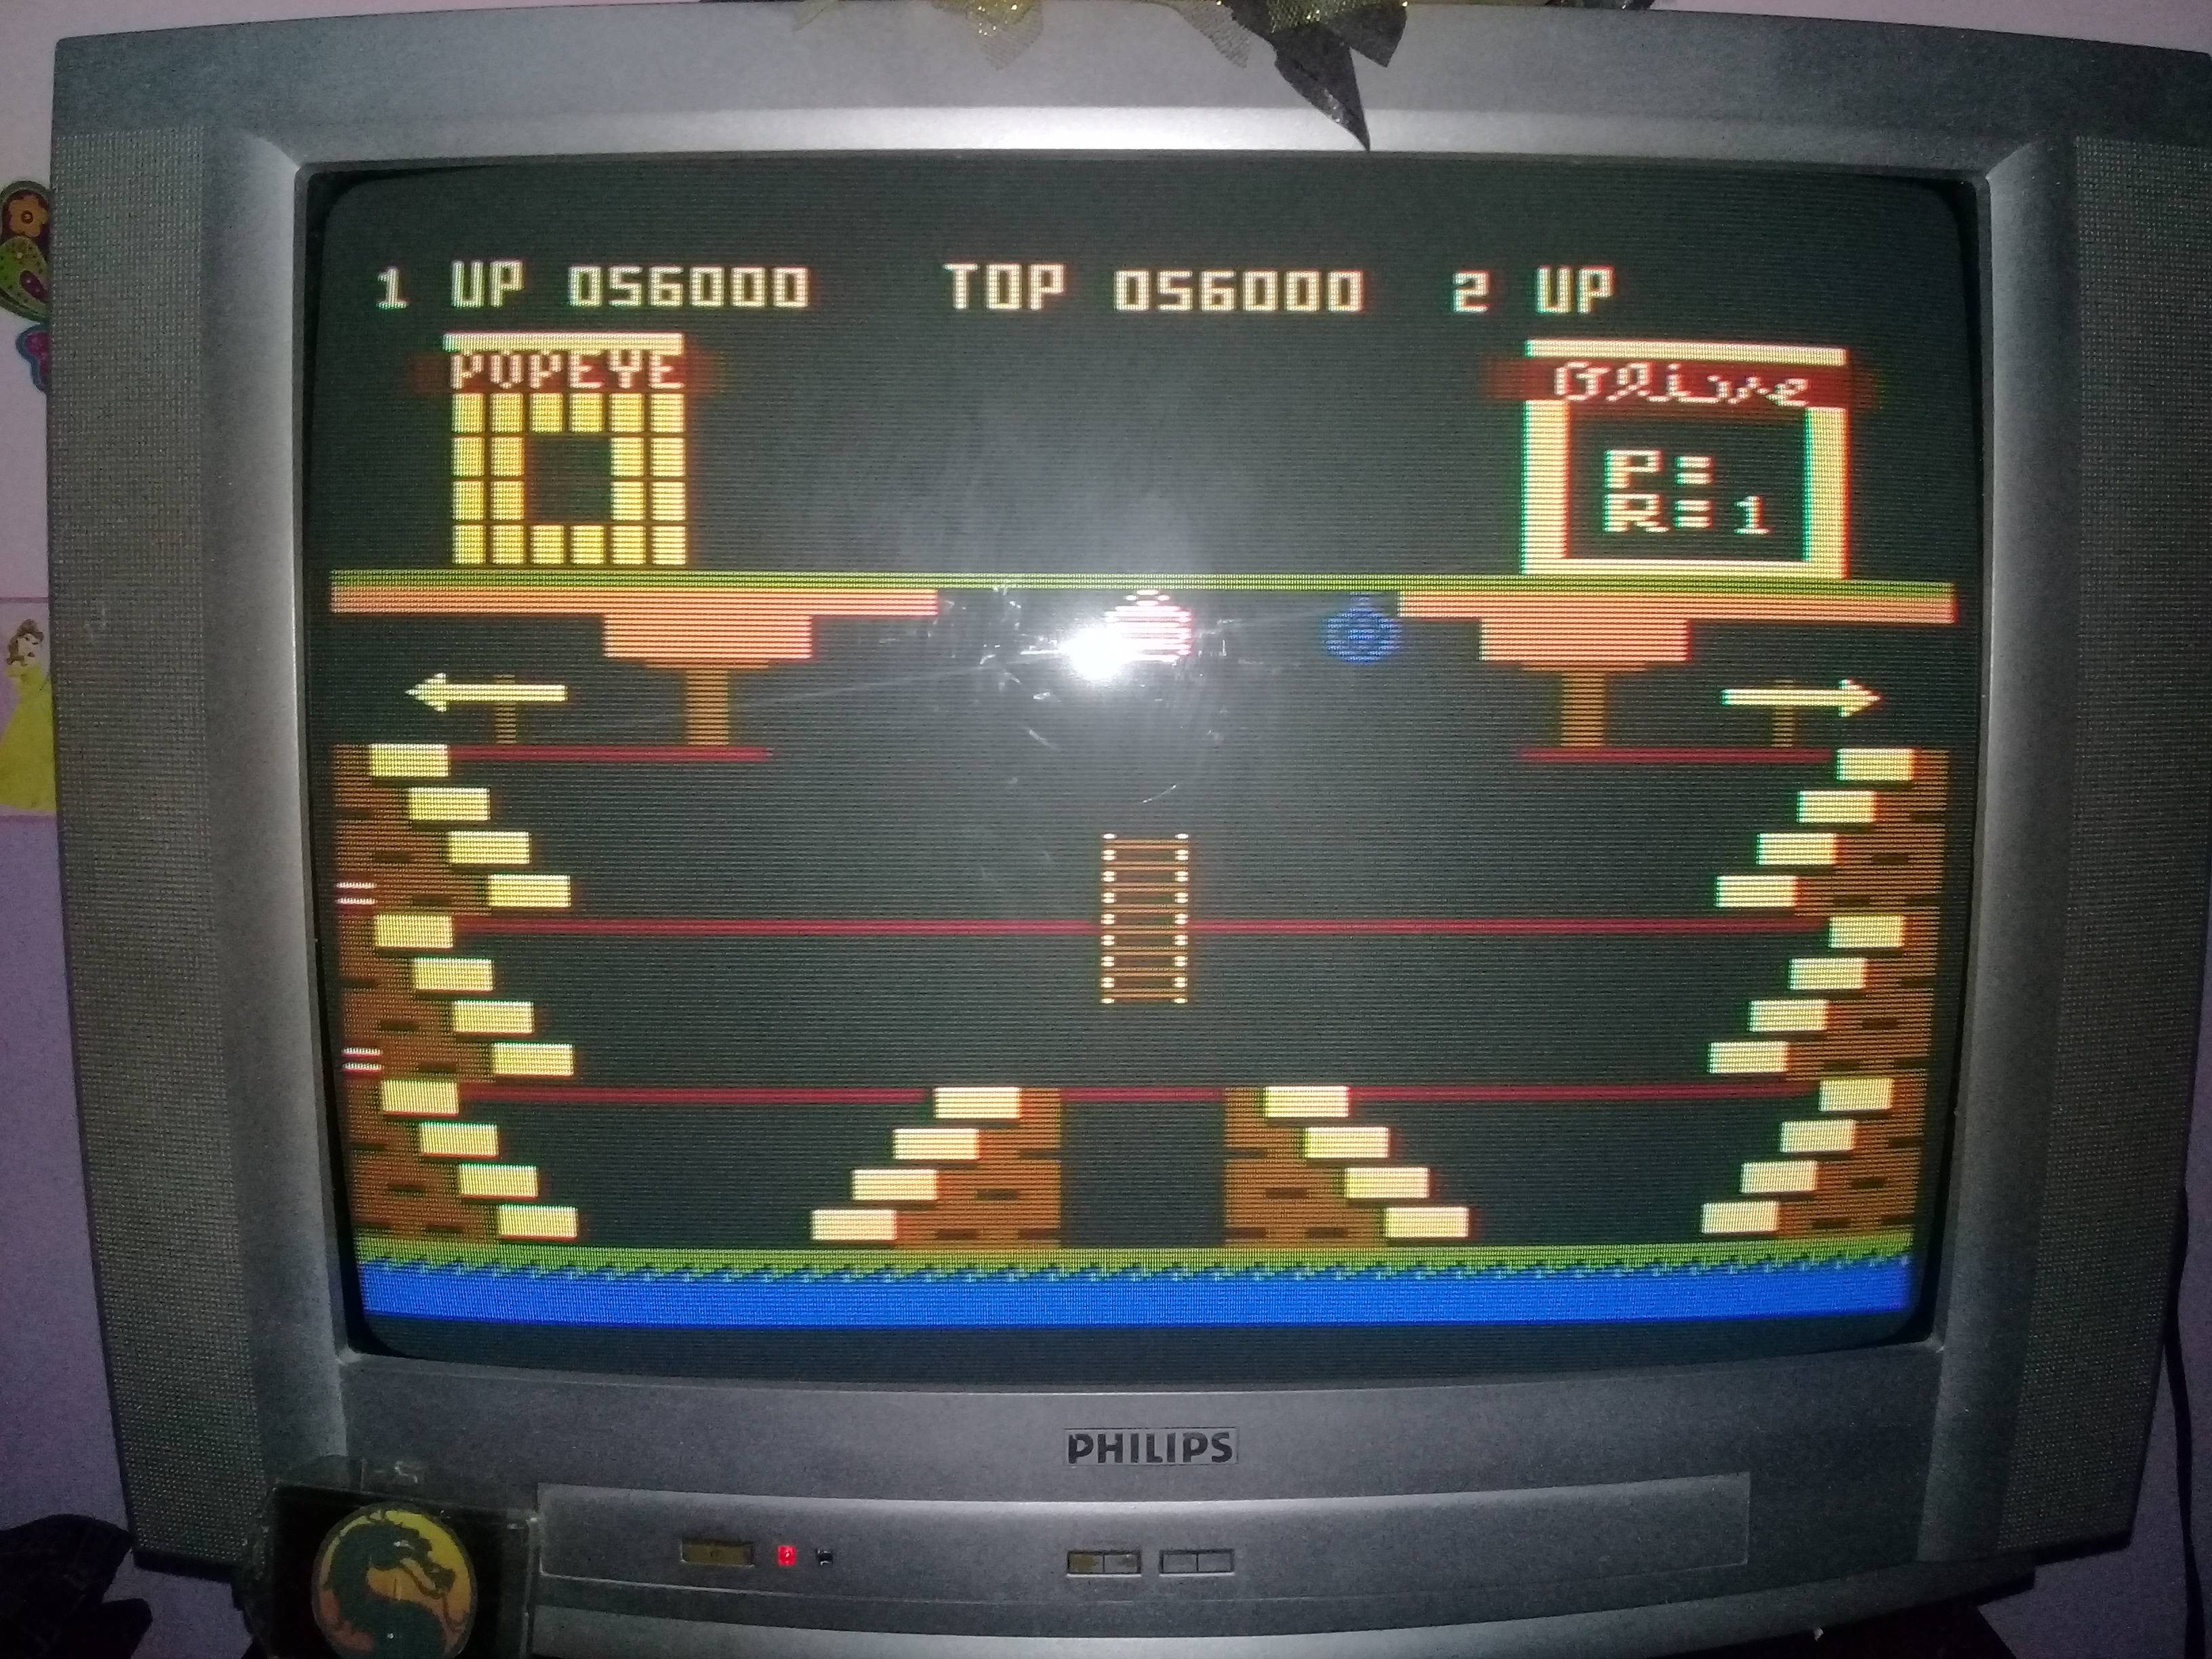 omargeddon: Popeye (Atari 400/800/XL/XE) 56,000 points on 2020-03-10 20:51:43